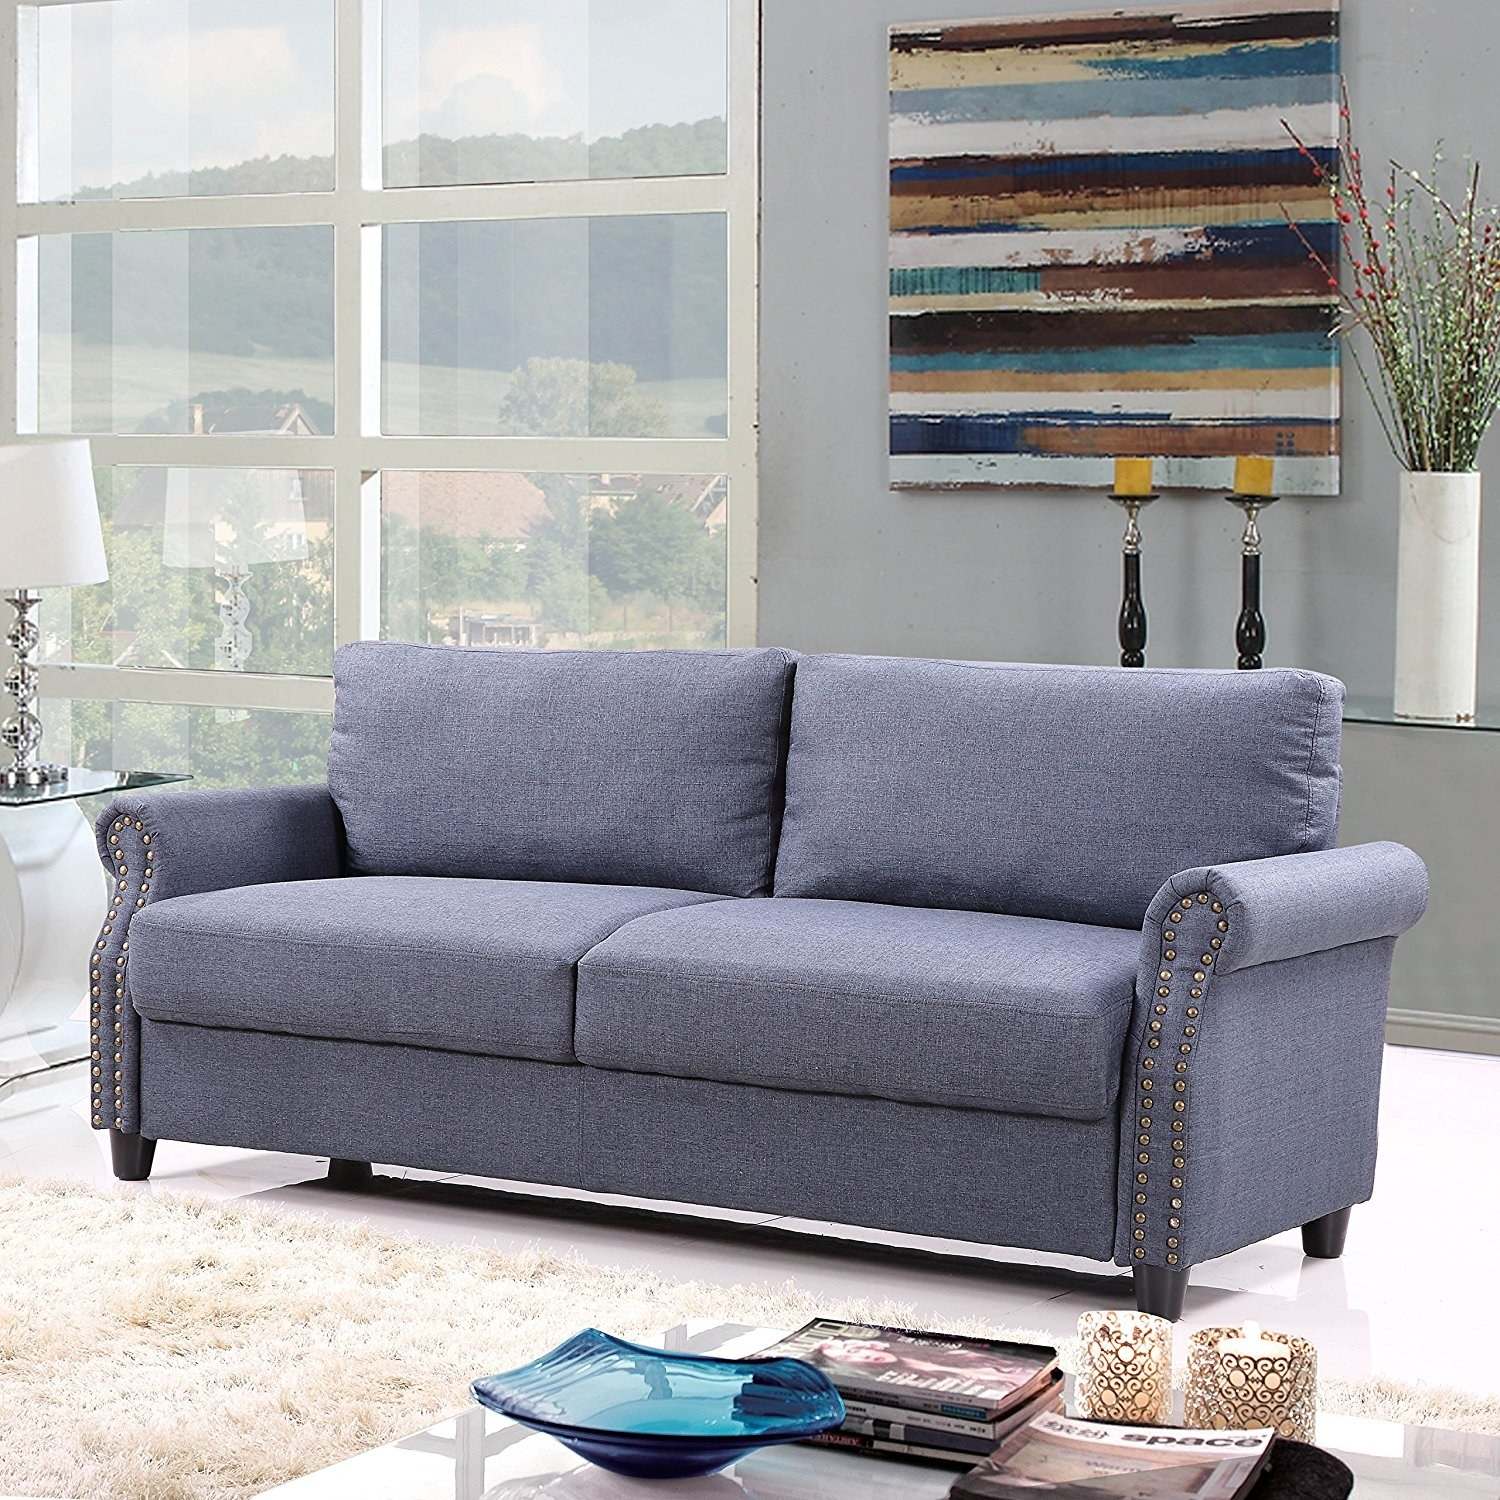 And a classic linen couch with genius storage space for hiding all your  movie-night snacks.